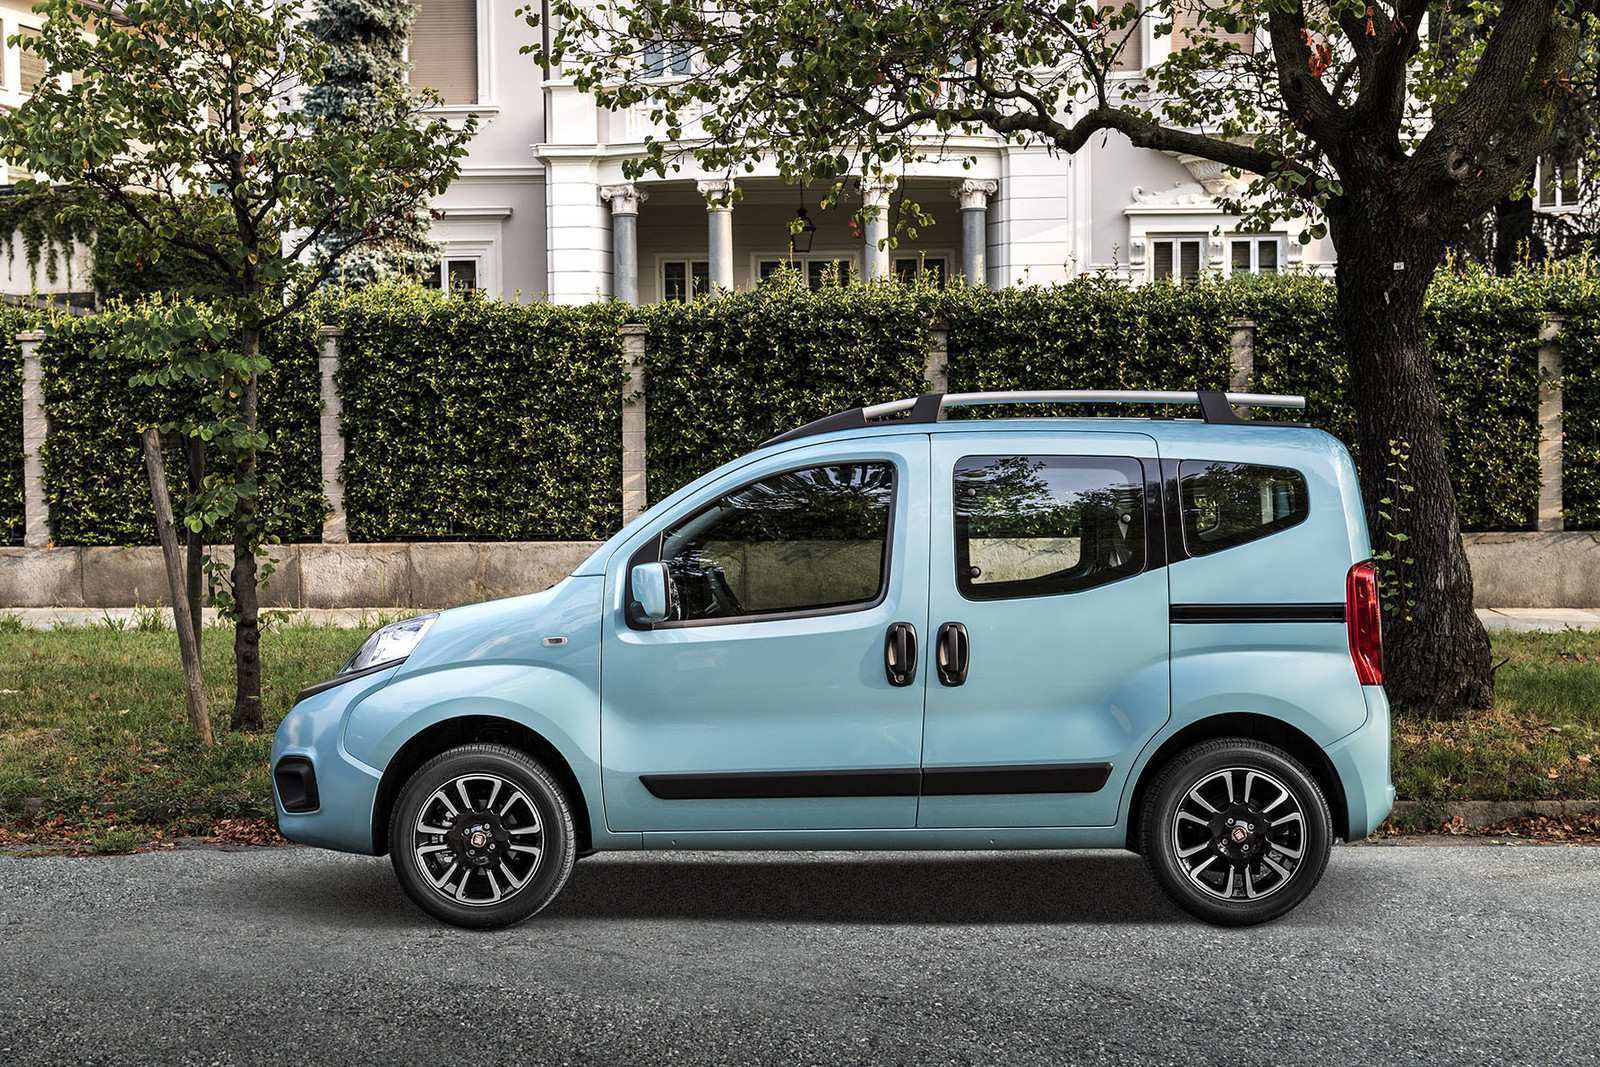 51 New Fiat Qubo 2020 Redesign and Concept by Fiat Qubo 2020